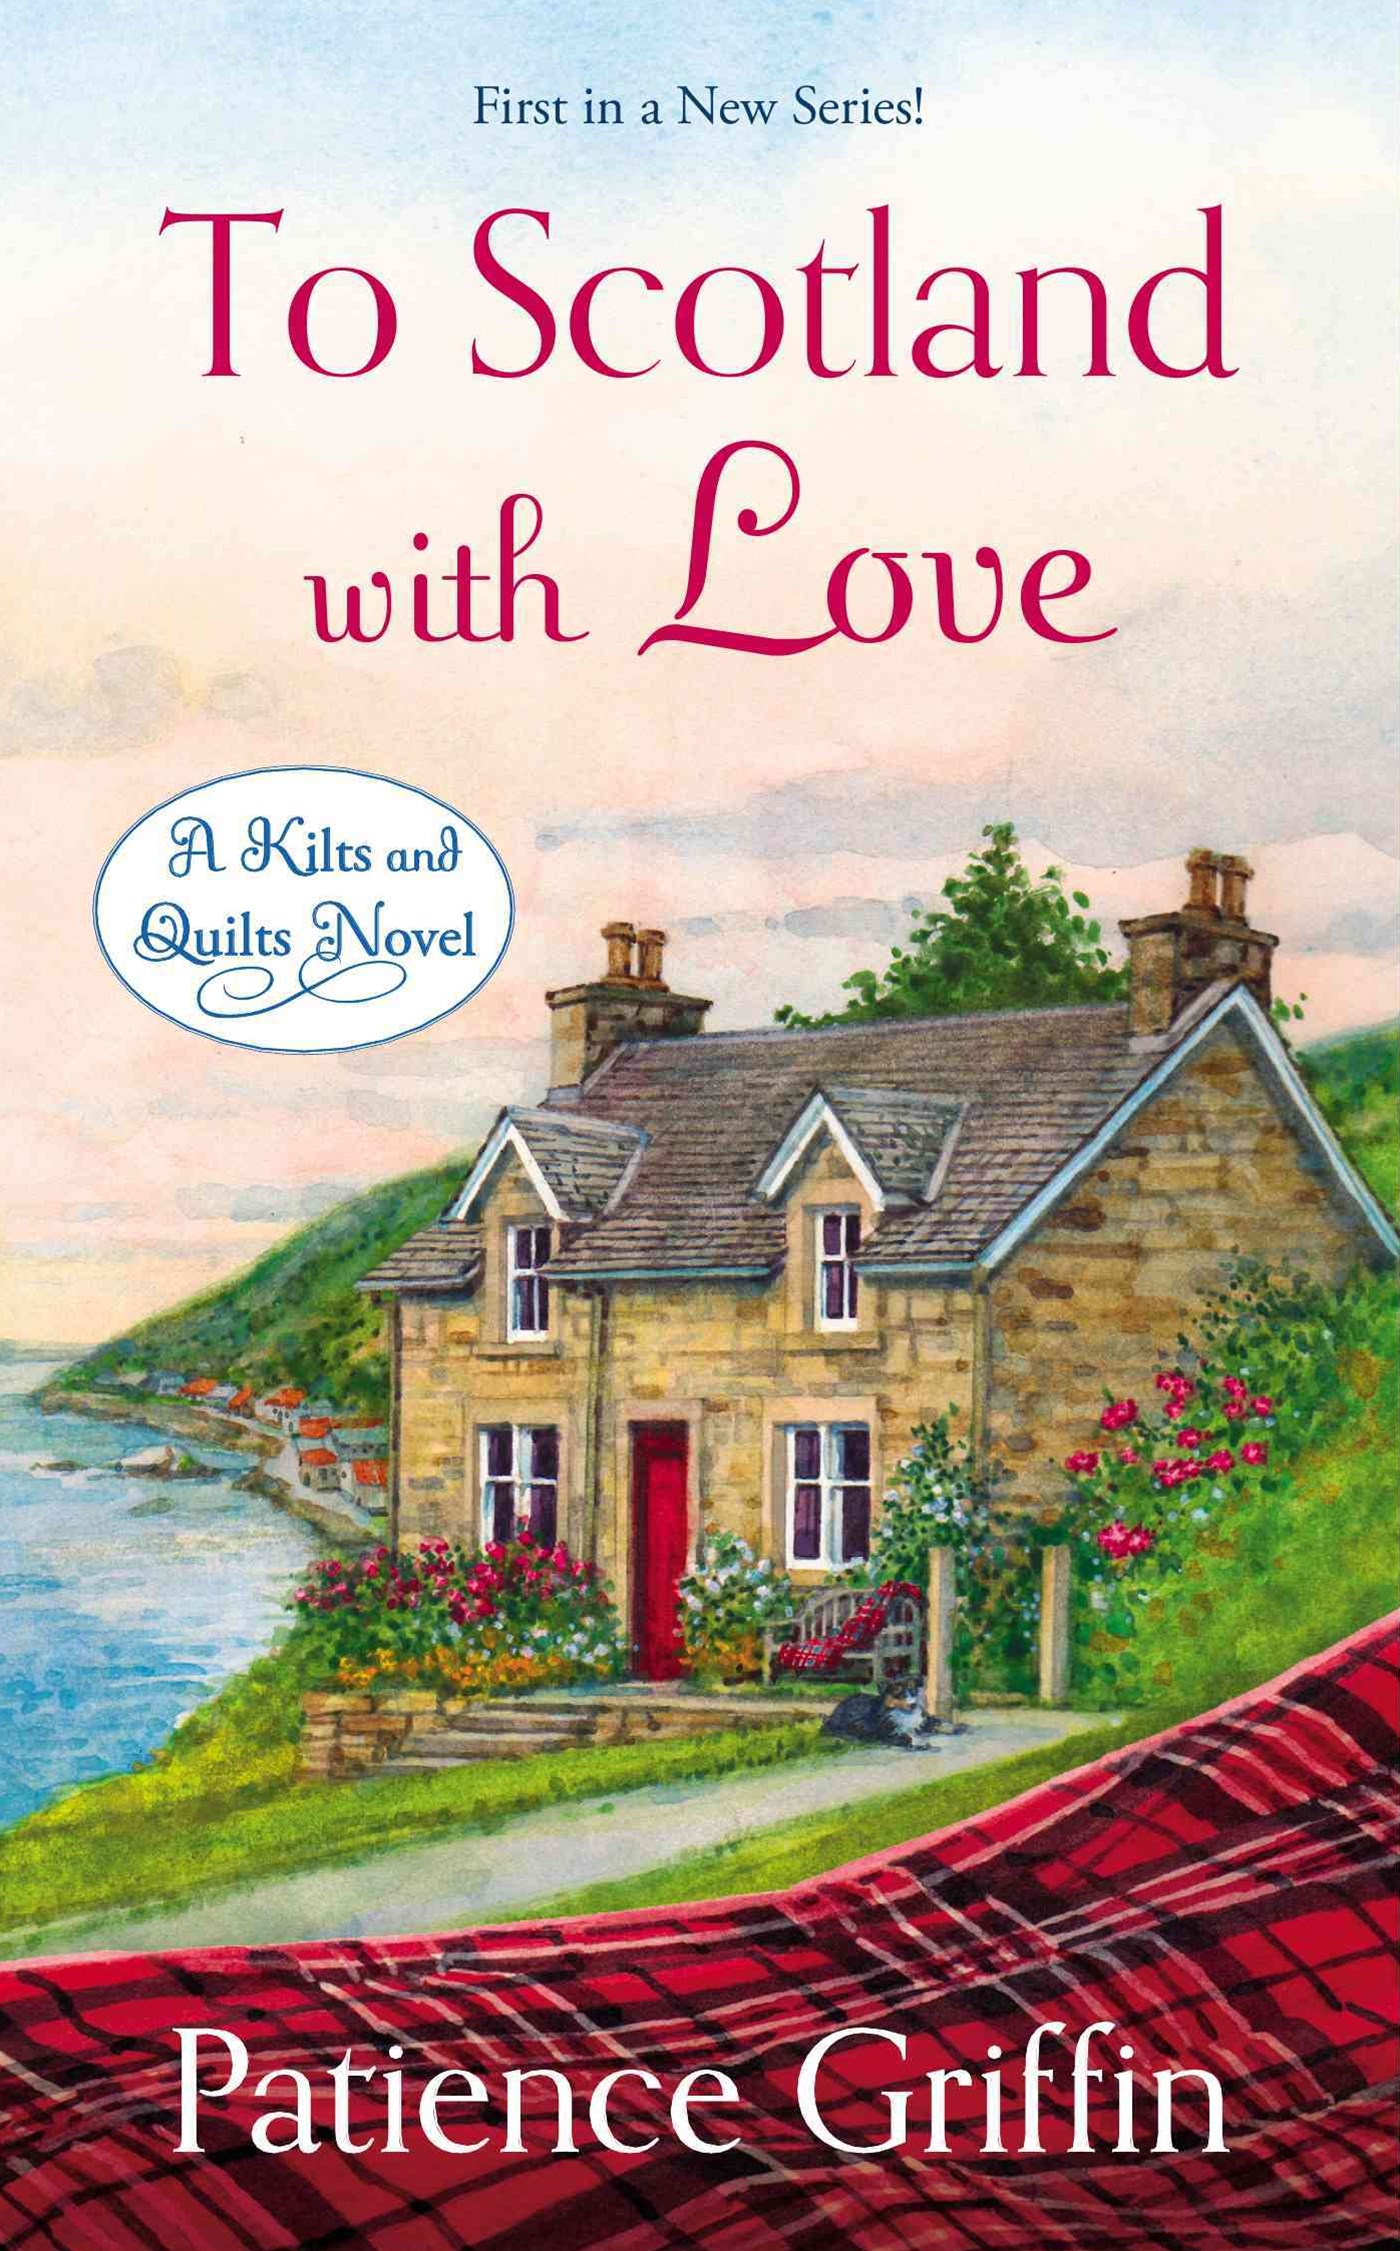 To Scotland With Love: A Kilts And Quilts Novel Book 1